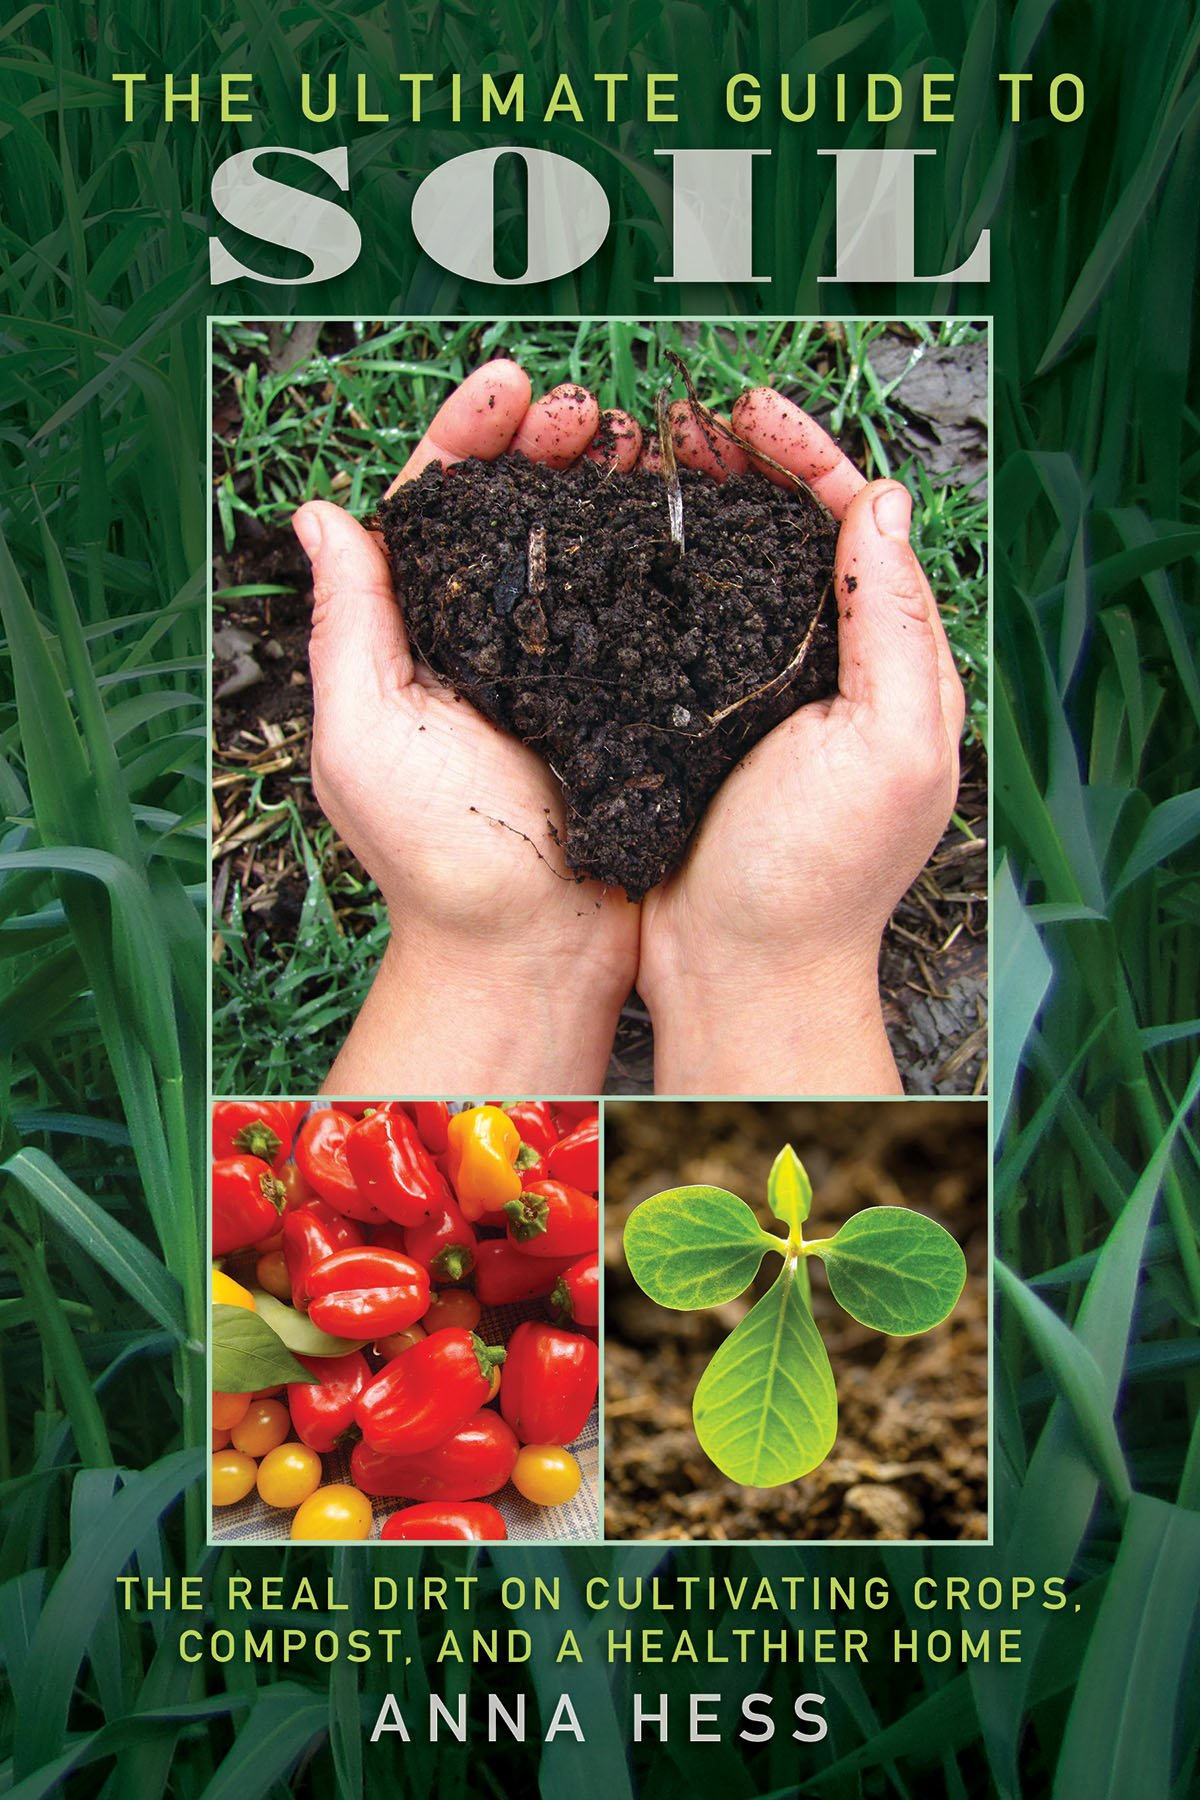 Download The Ultimate Guide to Soil: The Real Dirt on Cultivating Crops, Compost, and a Healthier Home PDF